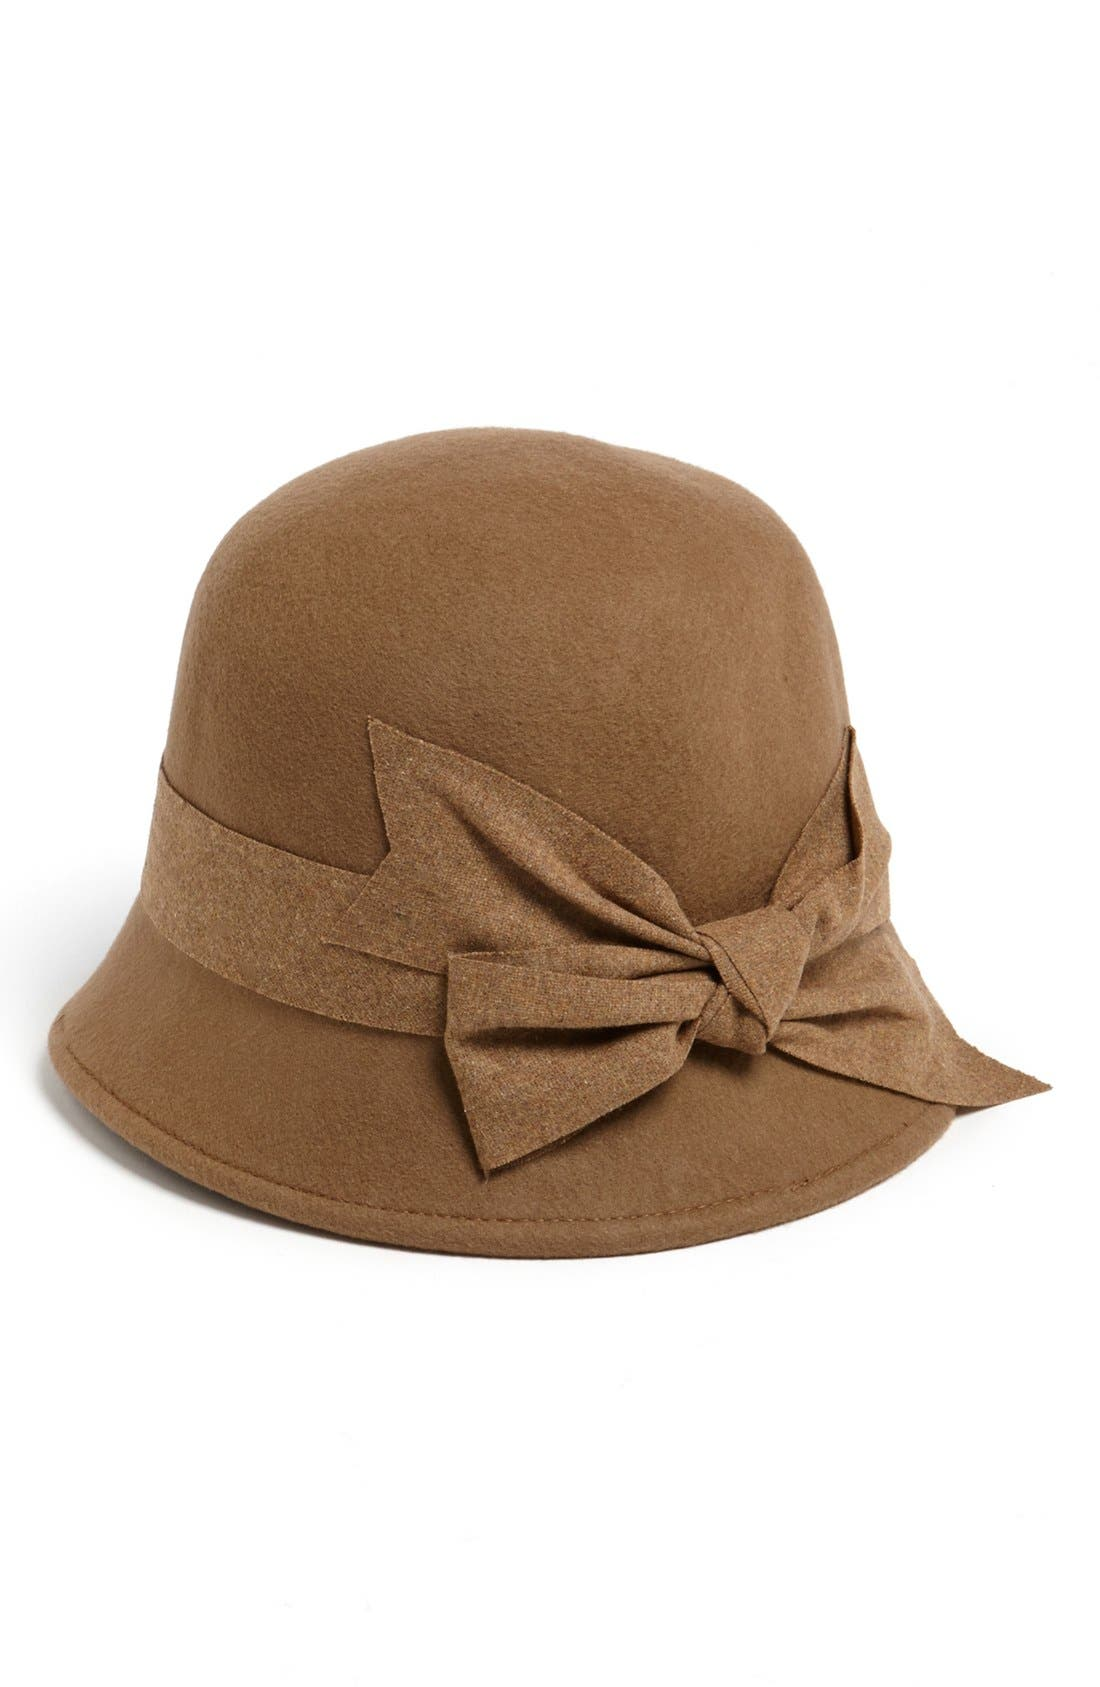 Main Image - Nordstrom Large Bow Wool Felt Cloche